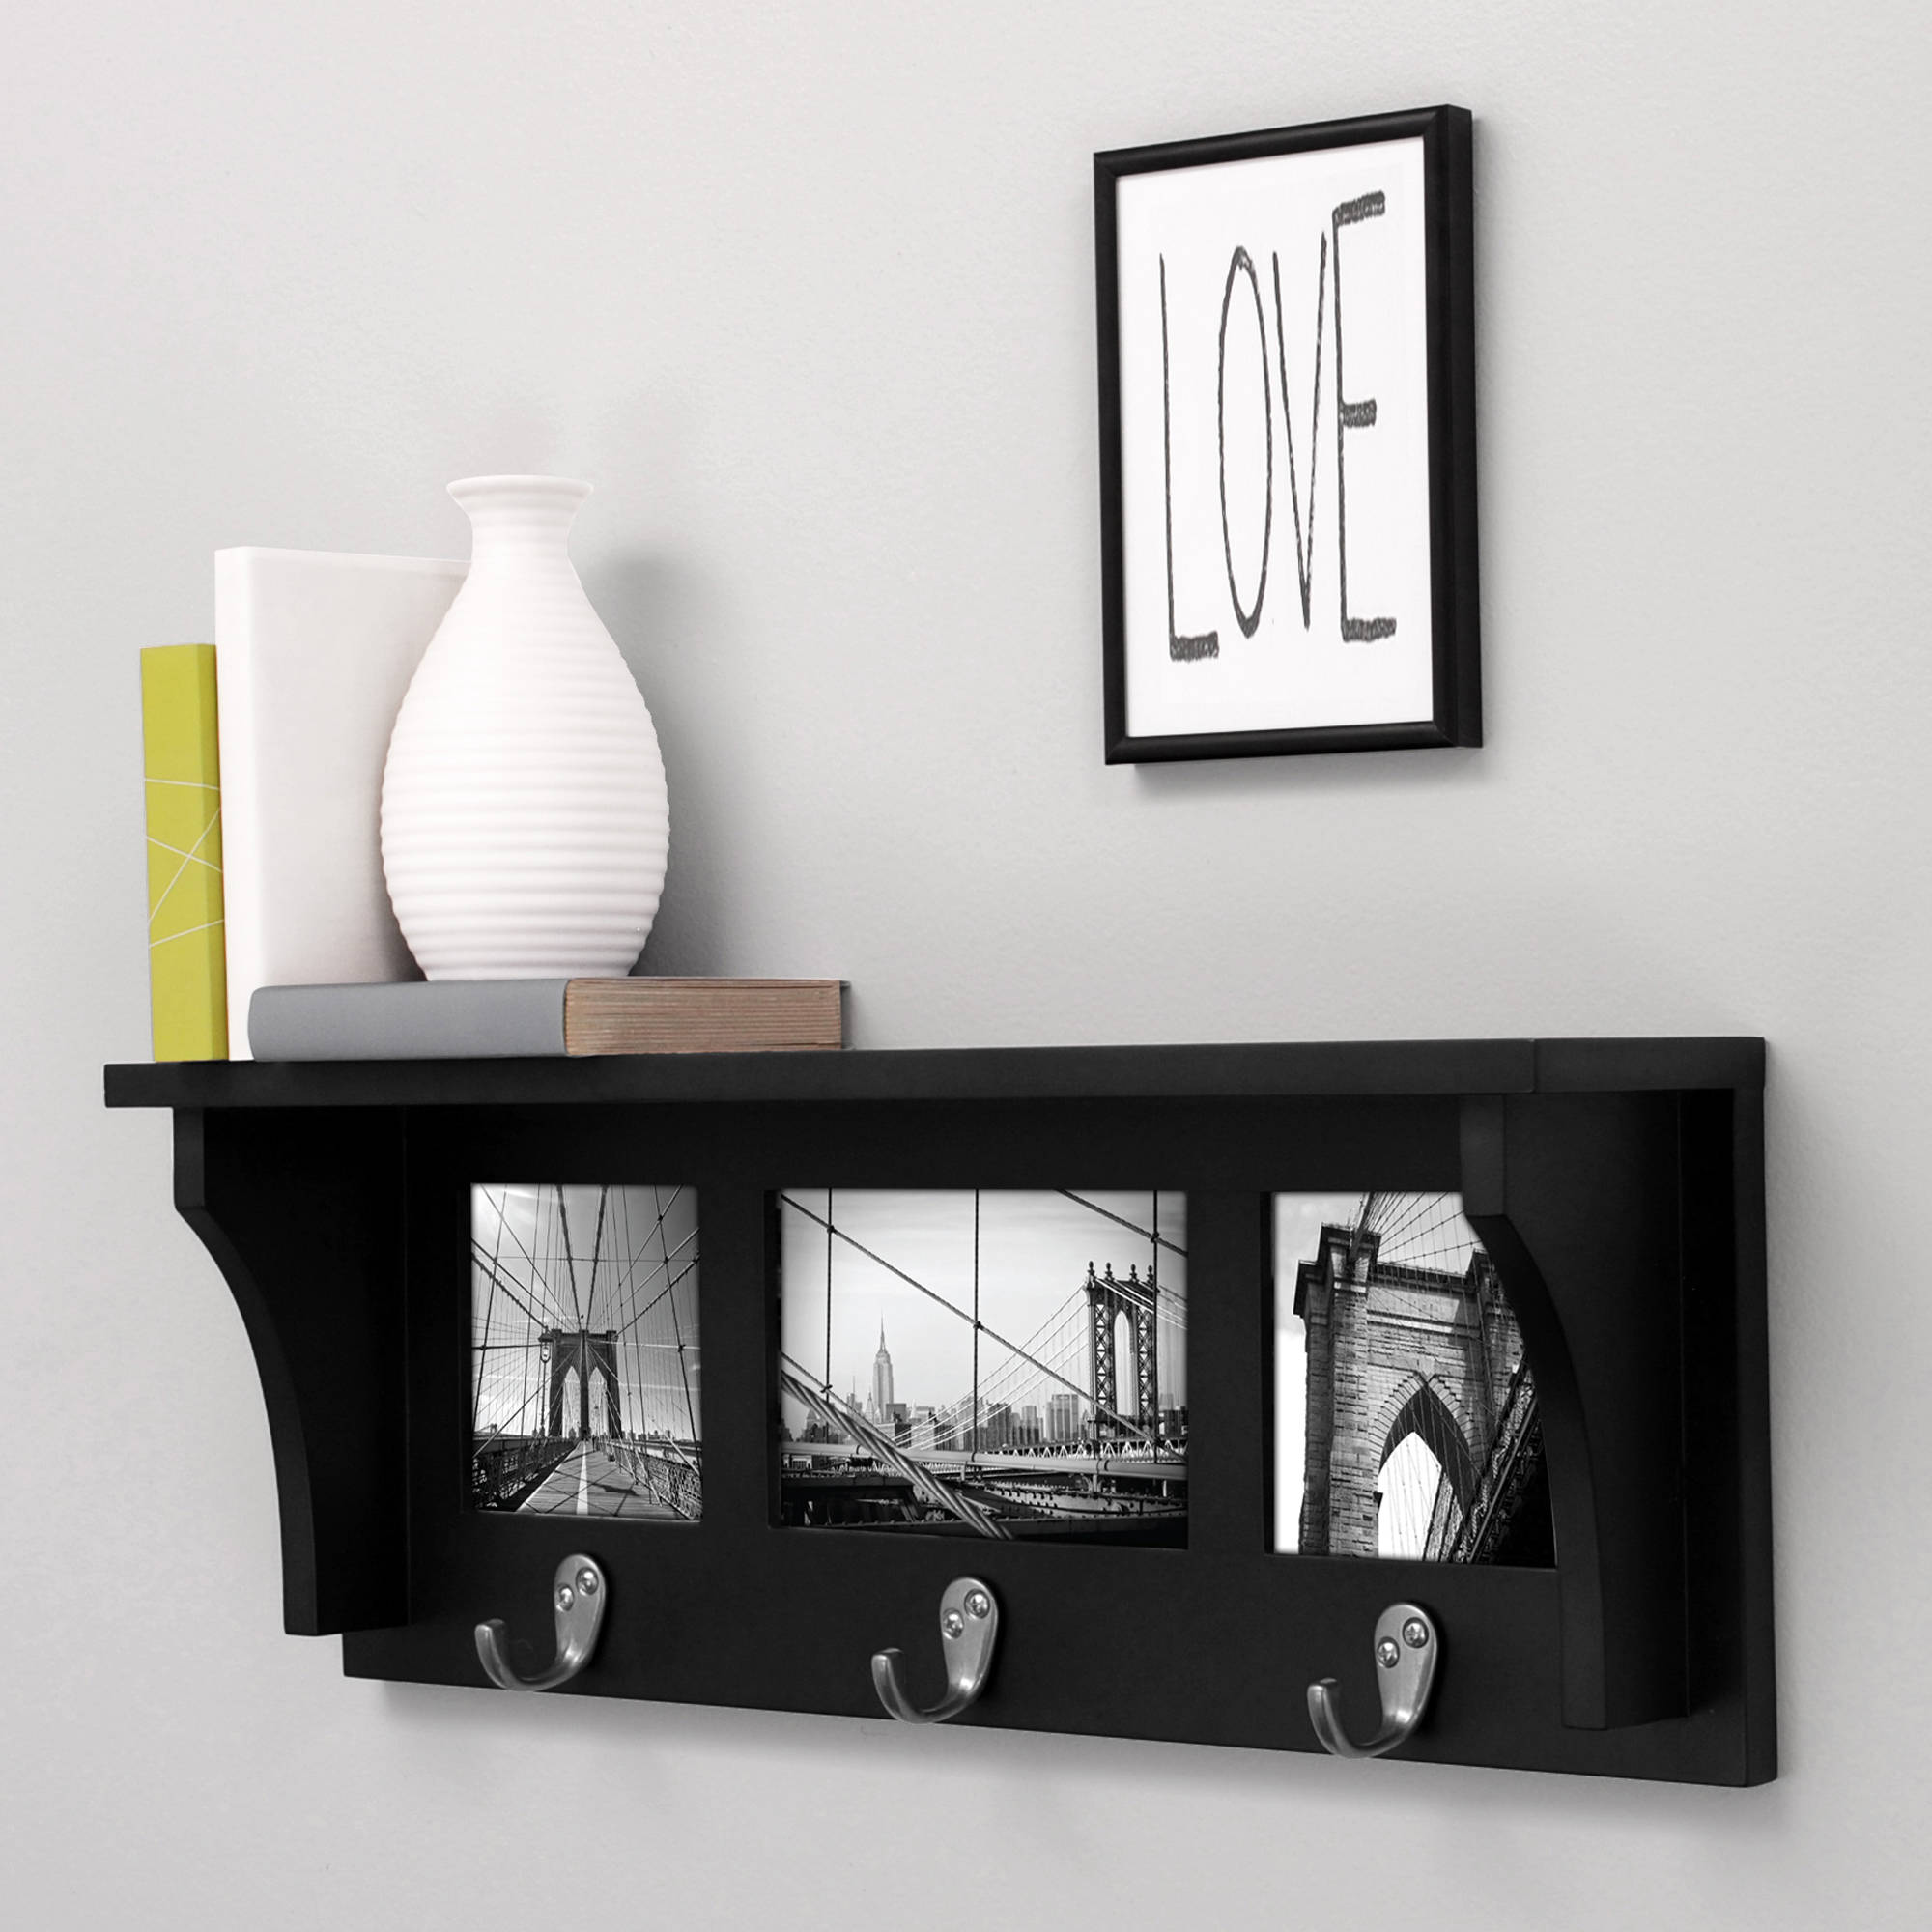 on rail white hook steel silver with racks and shelf floating mounted hooks wooden coat wall black amazing